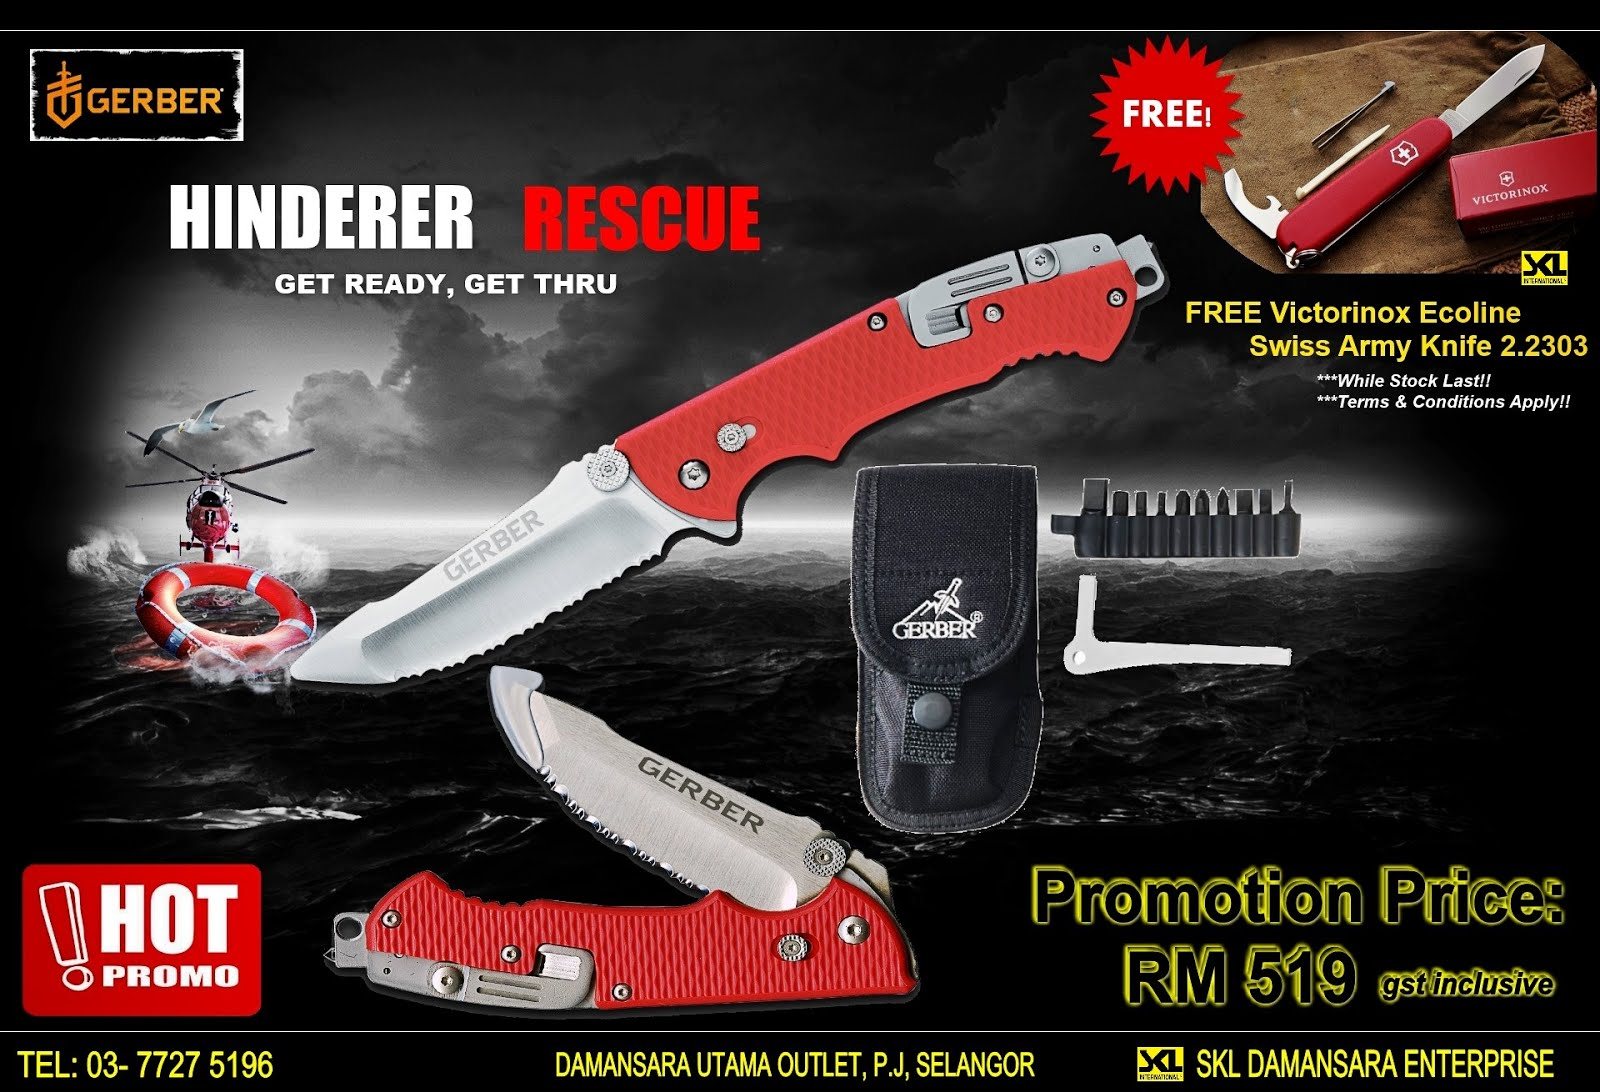 Gerber Hinderer Rescue knife set Free Victorinox Swiss Army Knife worth RM 76